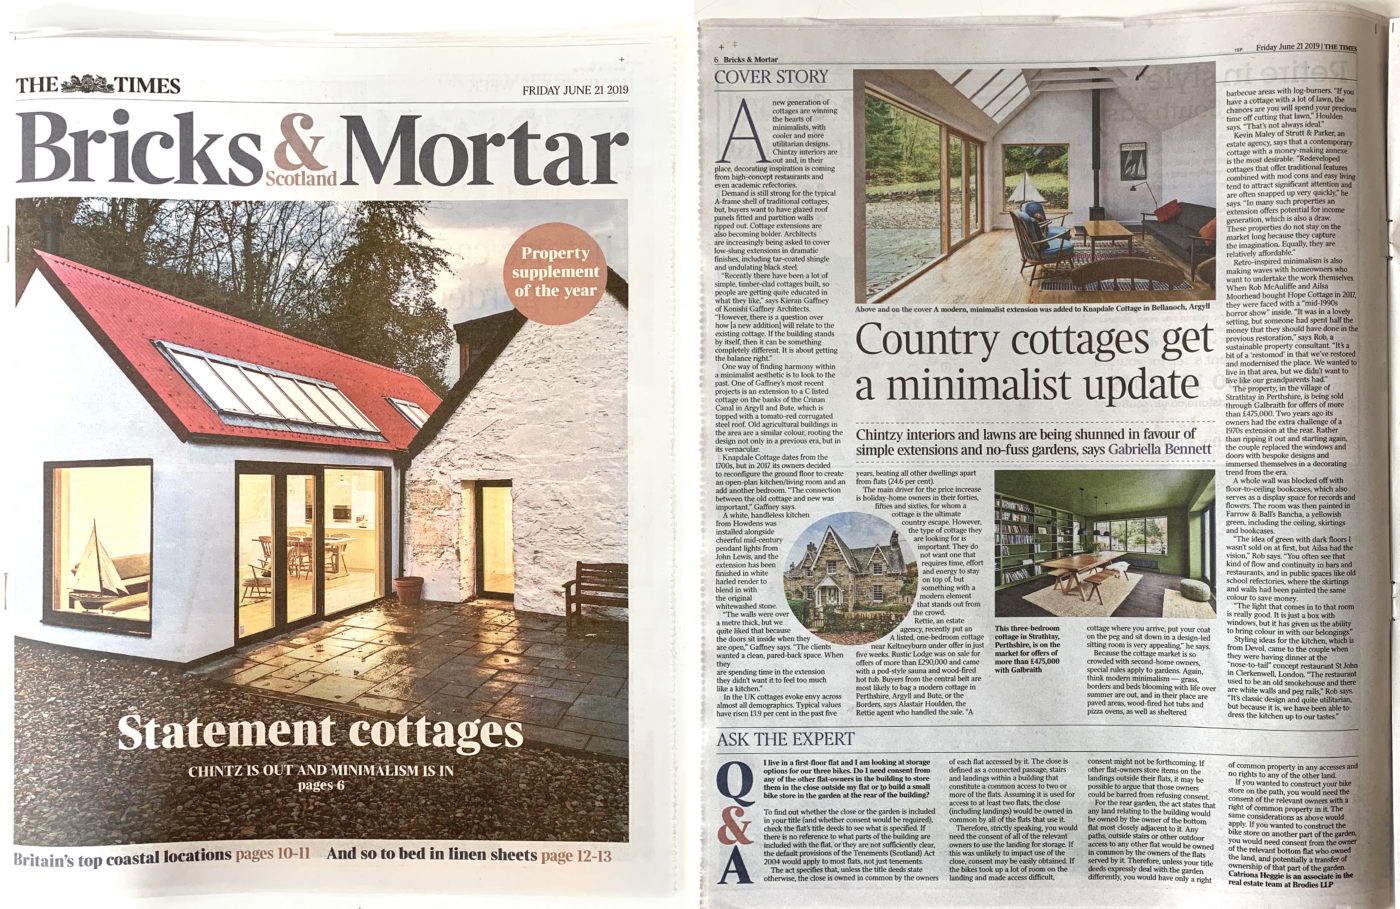 Bricks and Mortar article